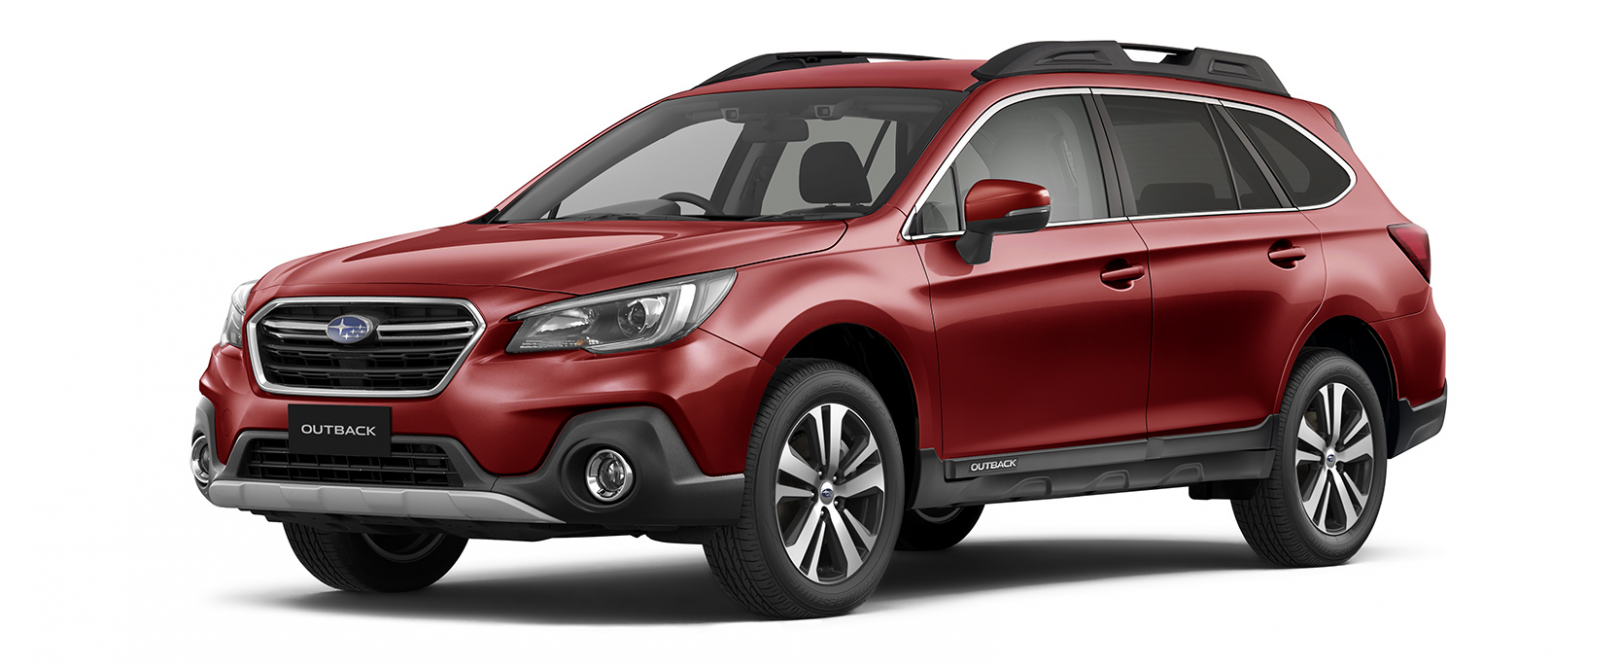 Outback 2.5i Sport_Crimson Red.